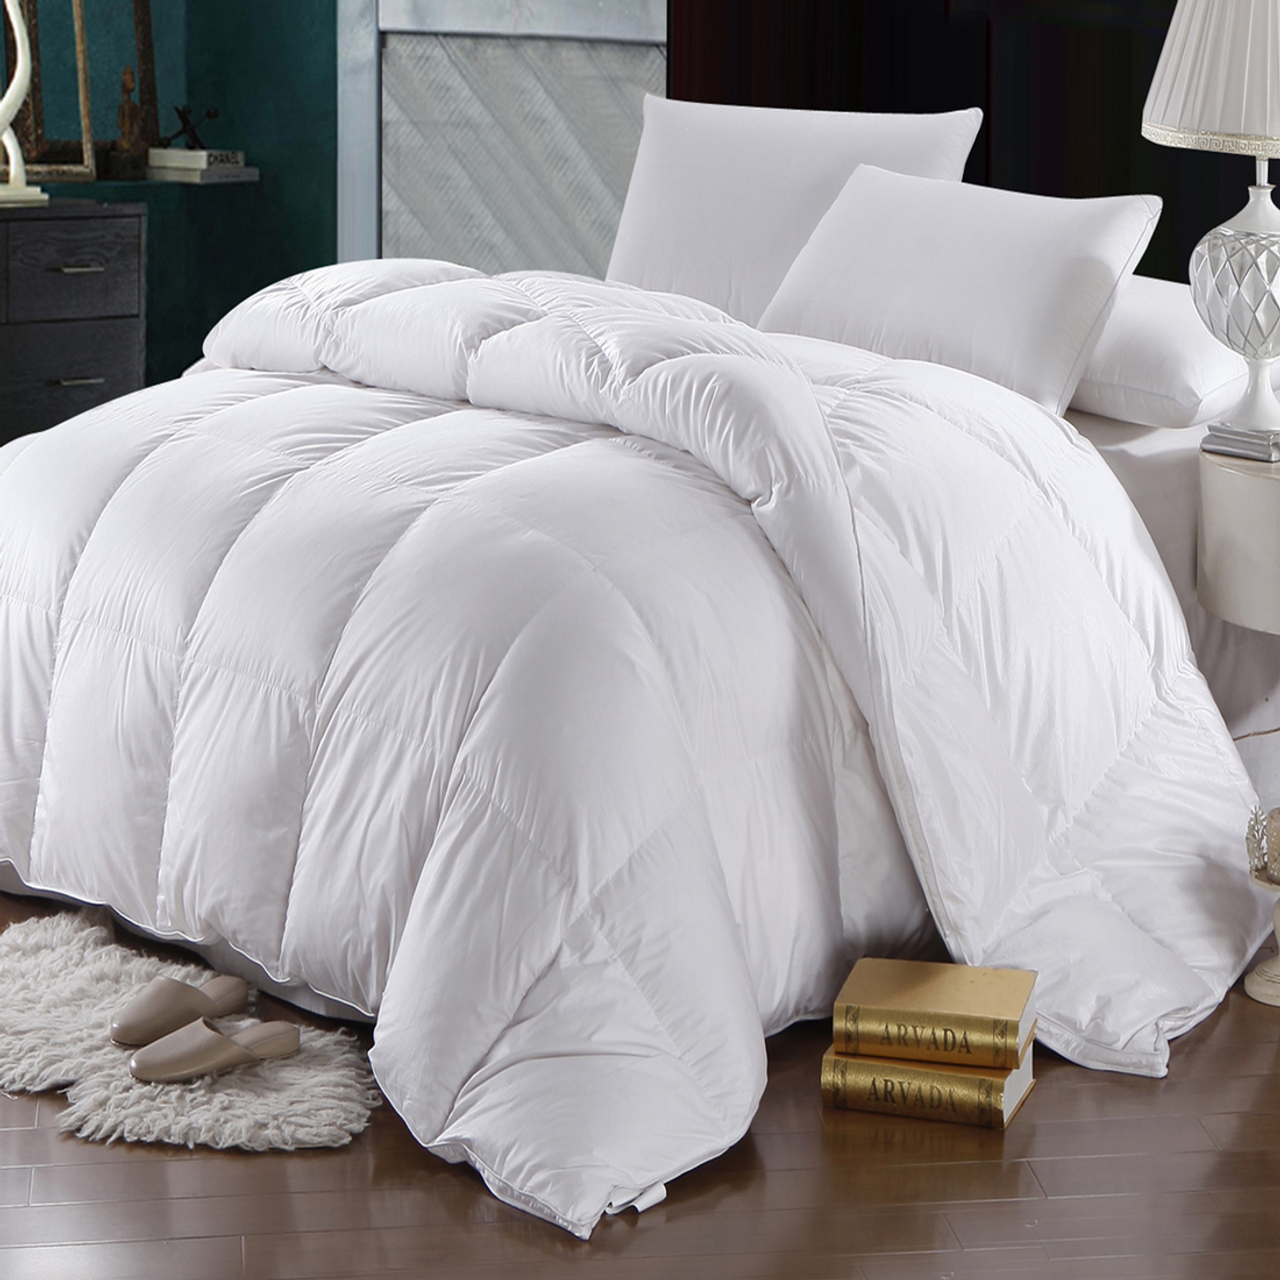 Charming Wholesale Beddings